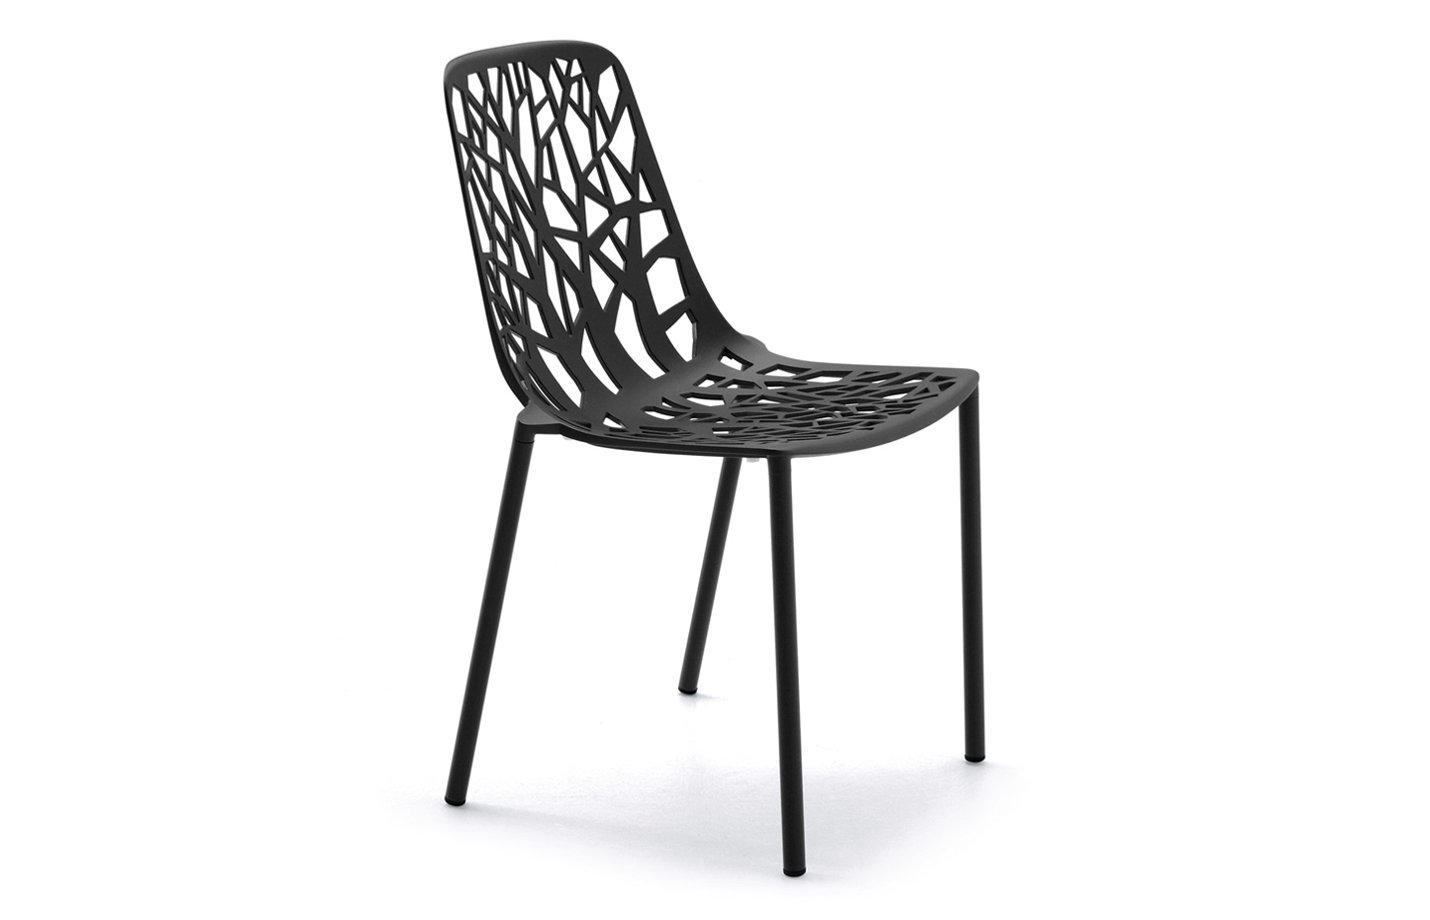 Forest chair fabiia dubai uae - Adorable iconic furniture design adapts black and white color ...